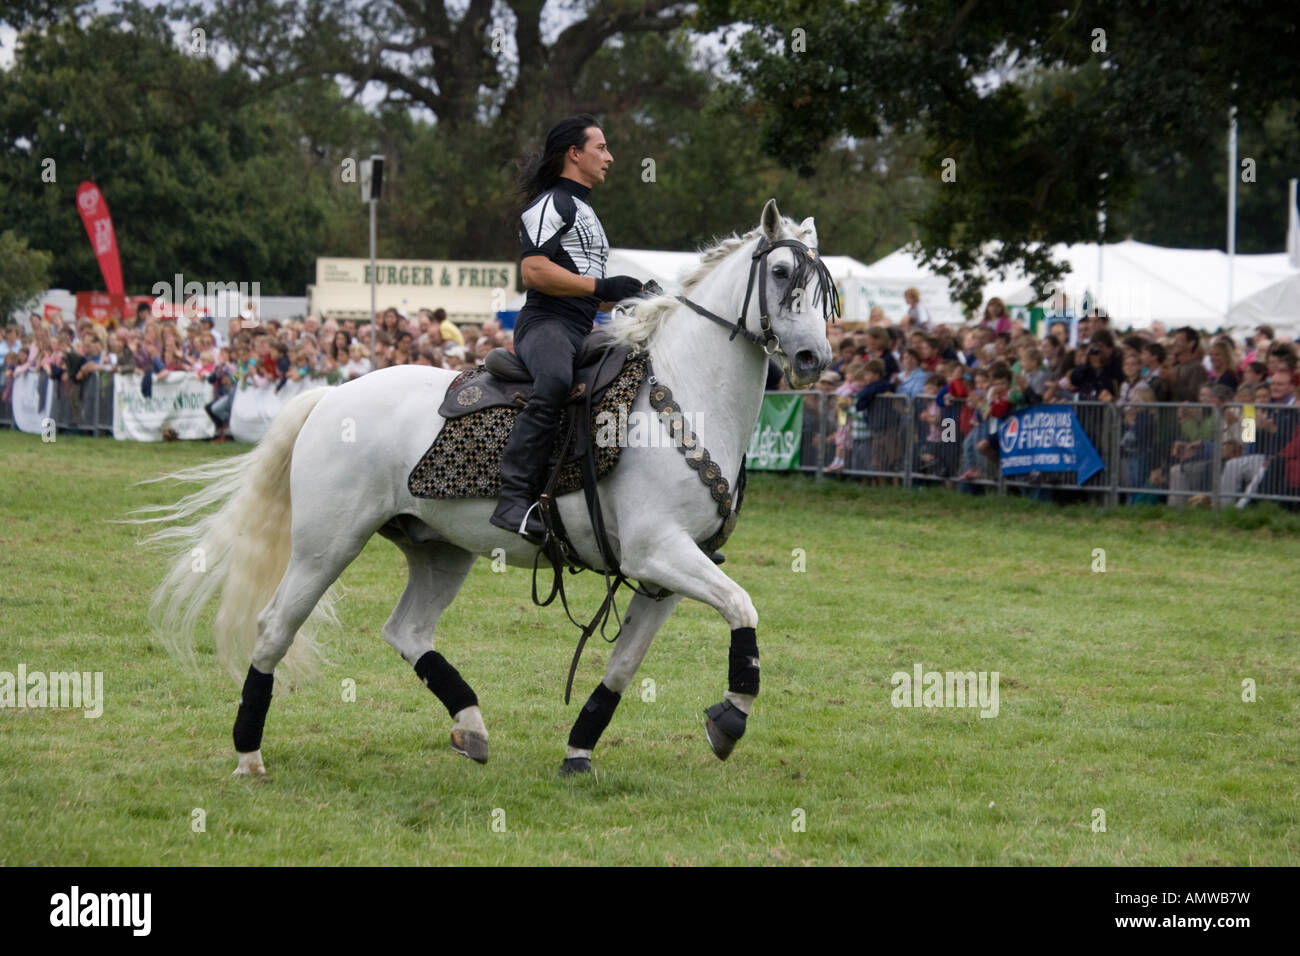 Guido Louis Russian cossack stunt rider Rockin Horse Productions team performing at Moreton Show 2007 Cotswolds - Stock Image